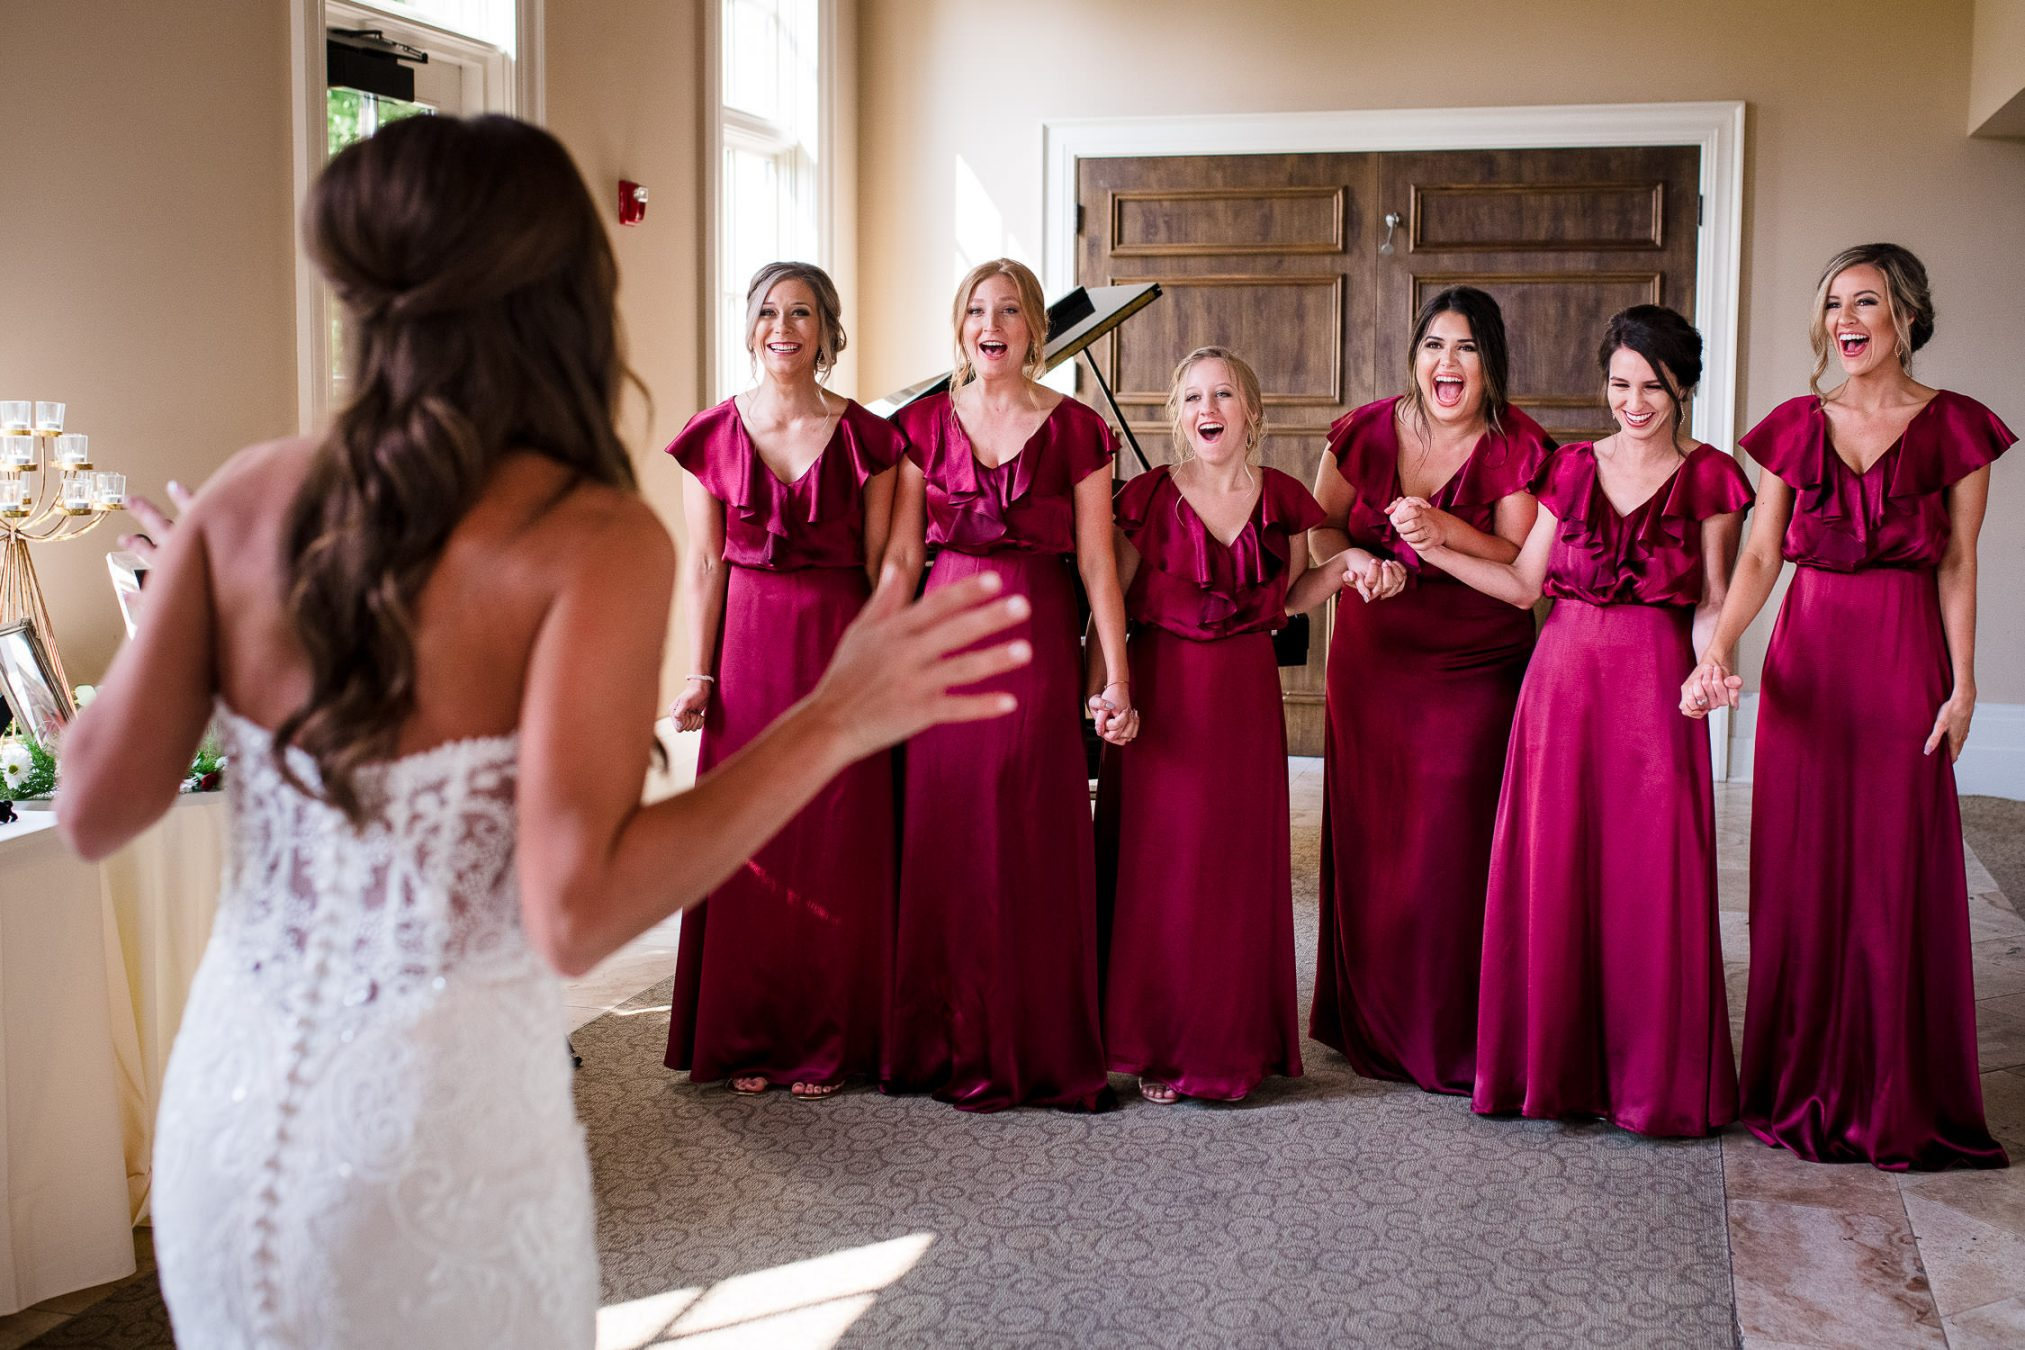 bridesmaids reacting to beautiful bride